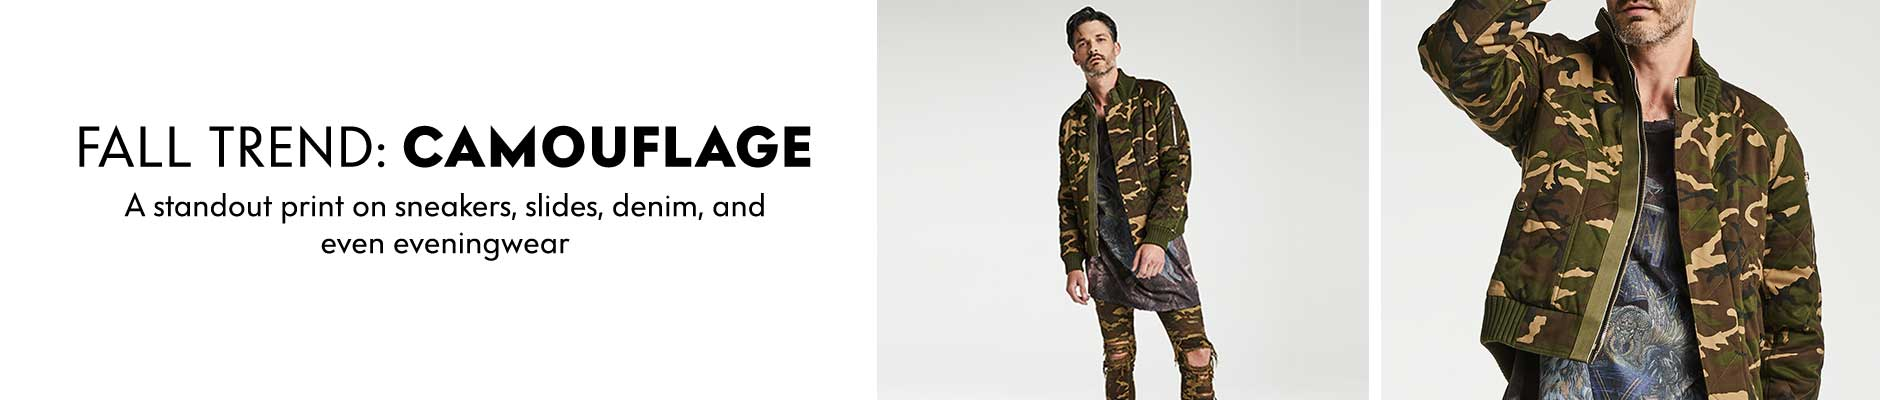 Fall Trend: Camouflage - A standout print on sneakers, slides, denim, and even eveningwear